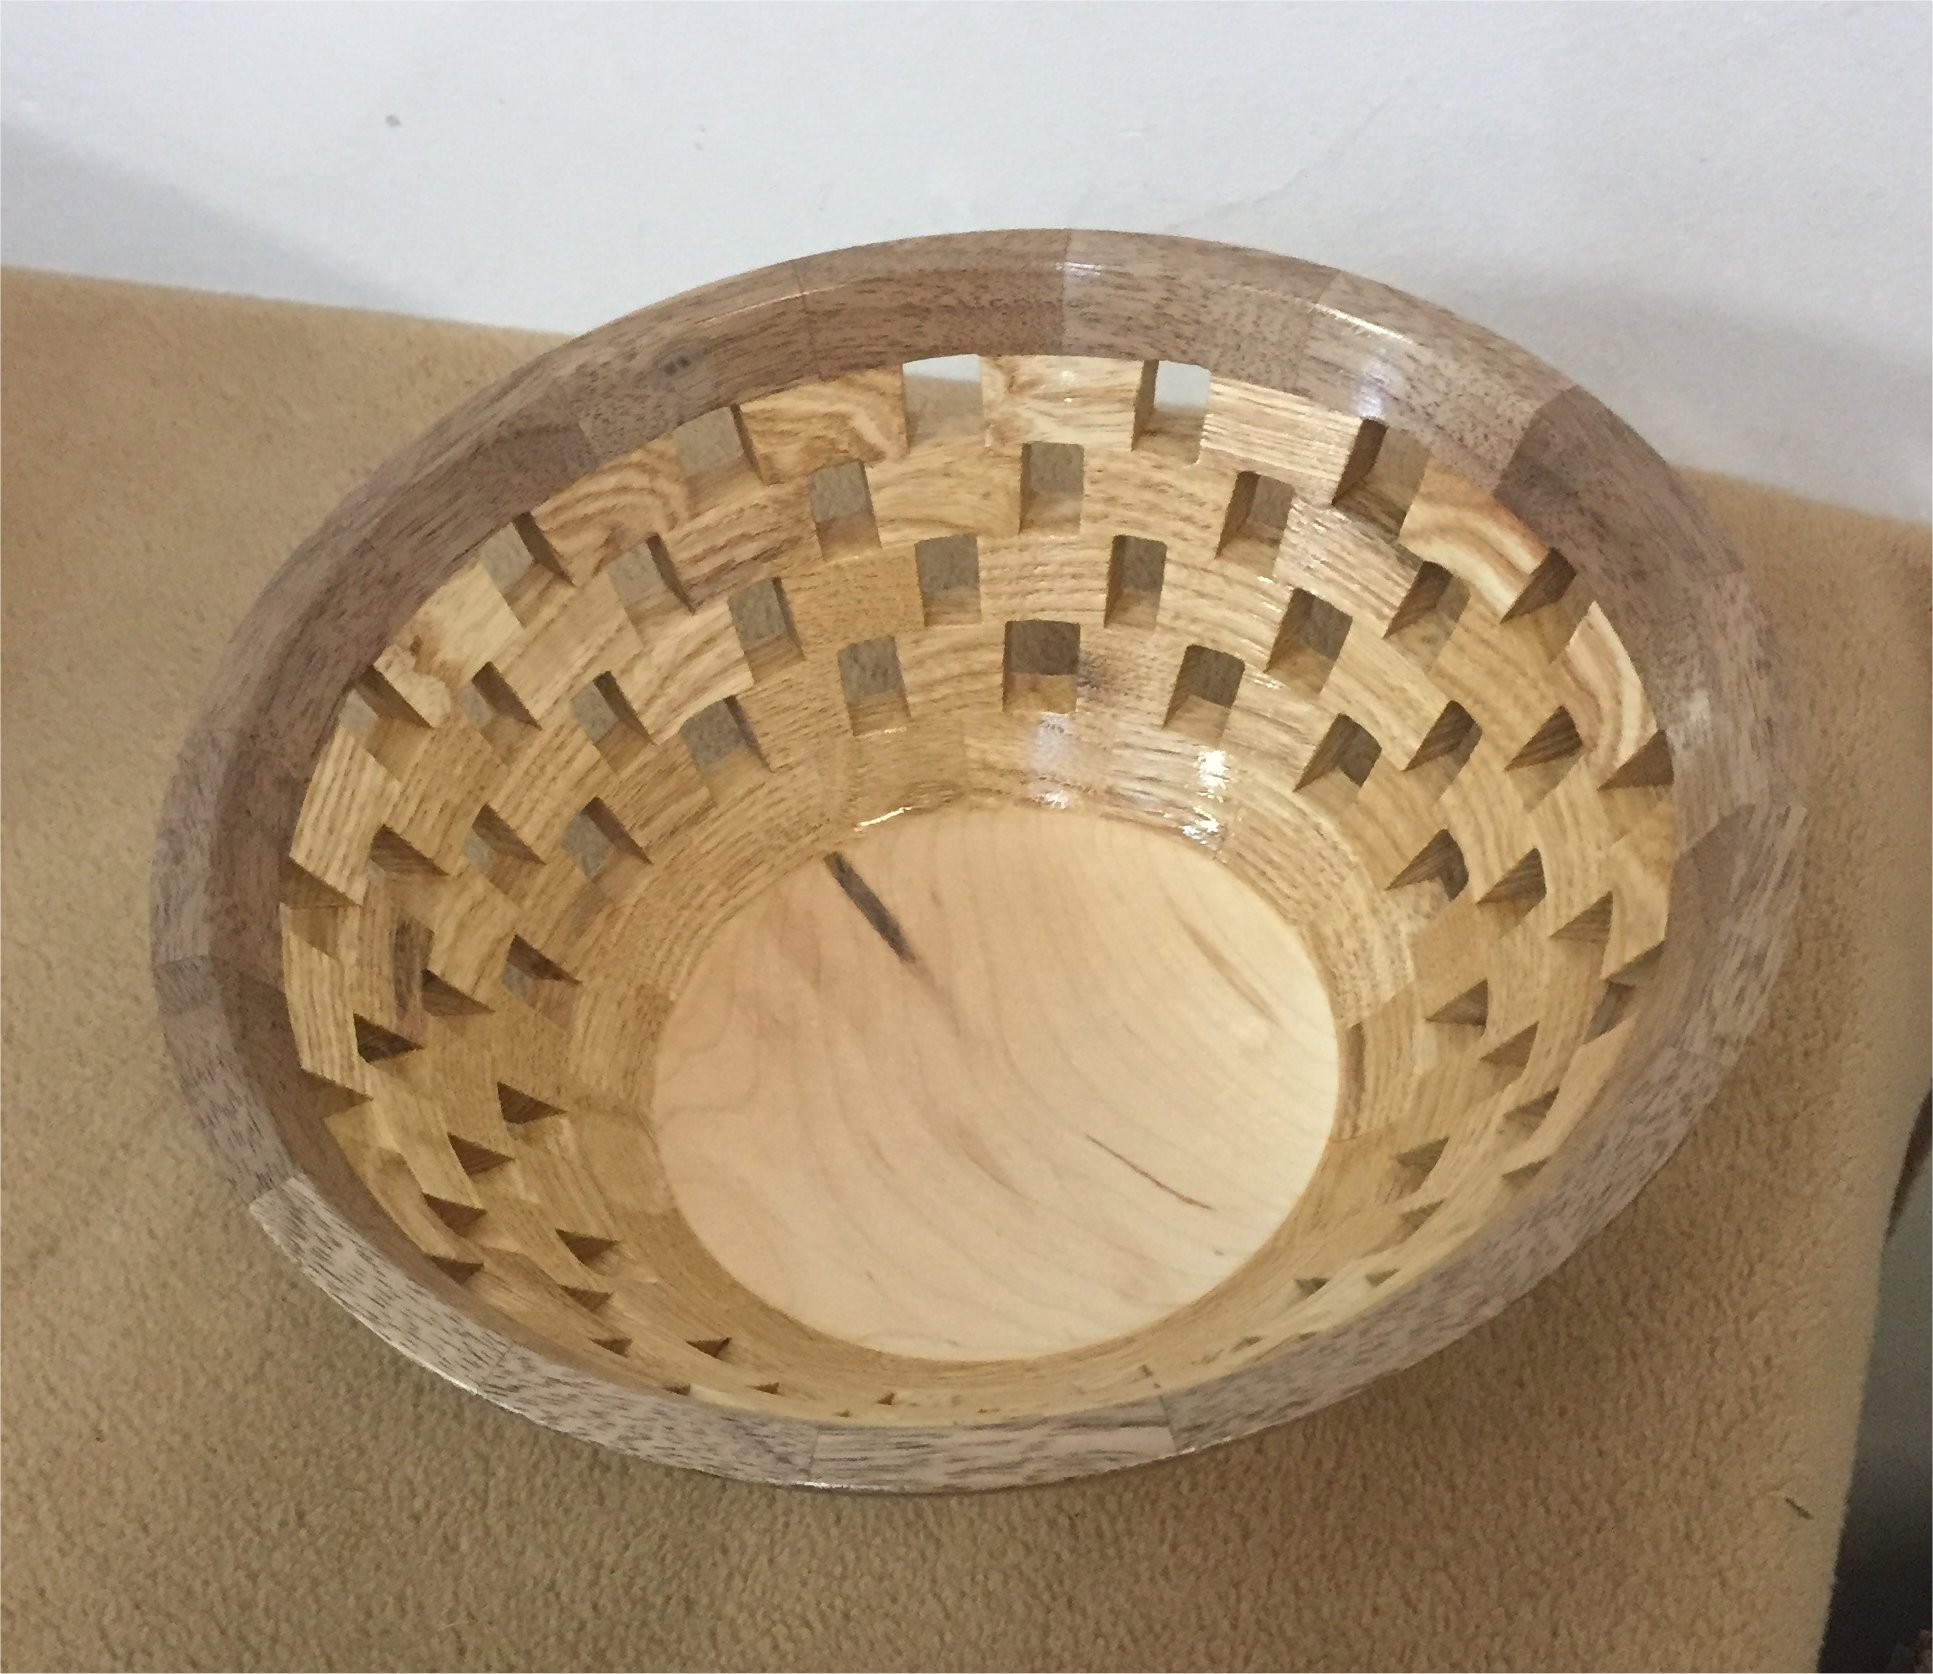 Open Segmented bowl also by Mikeal Jones